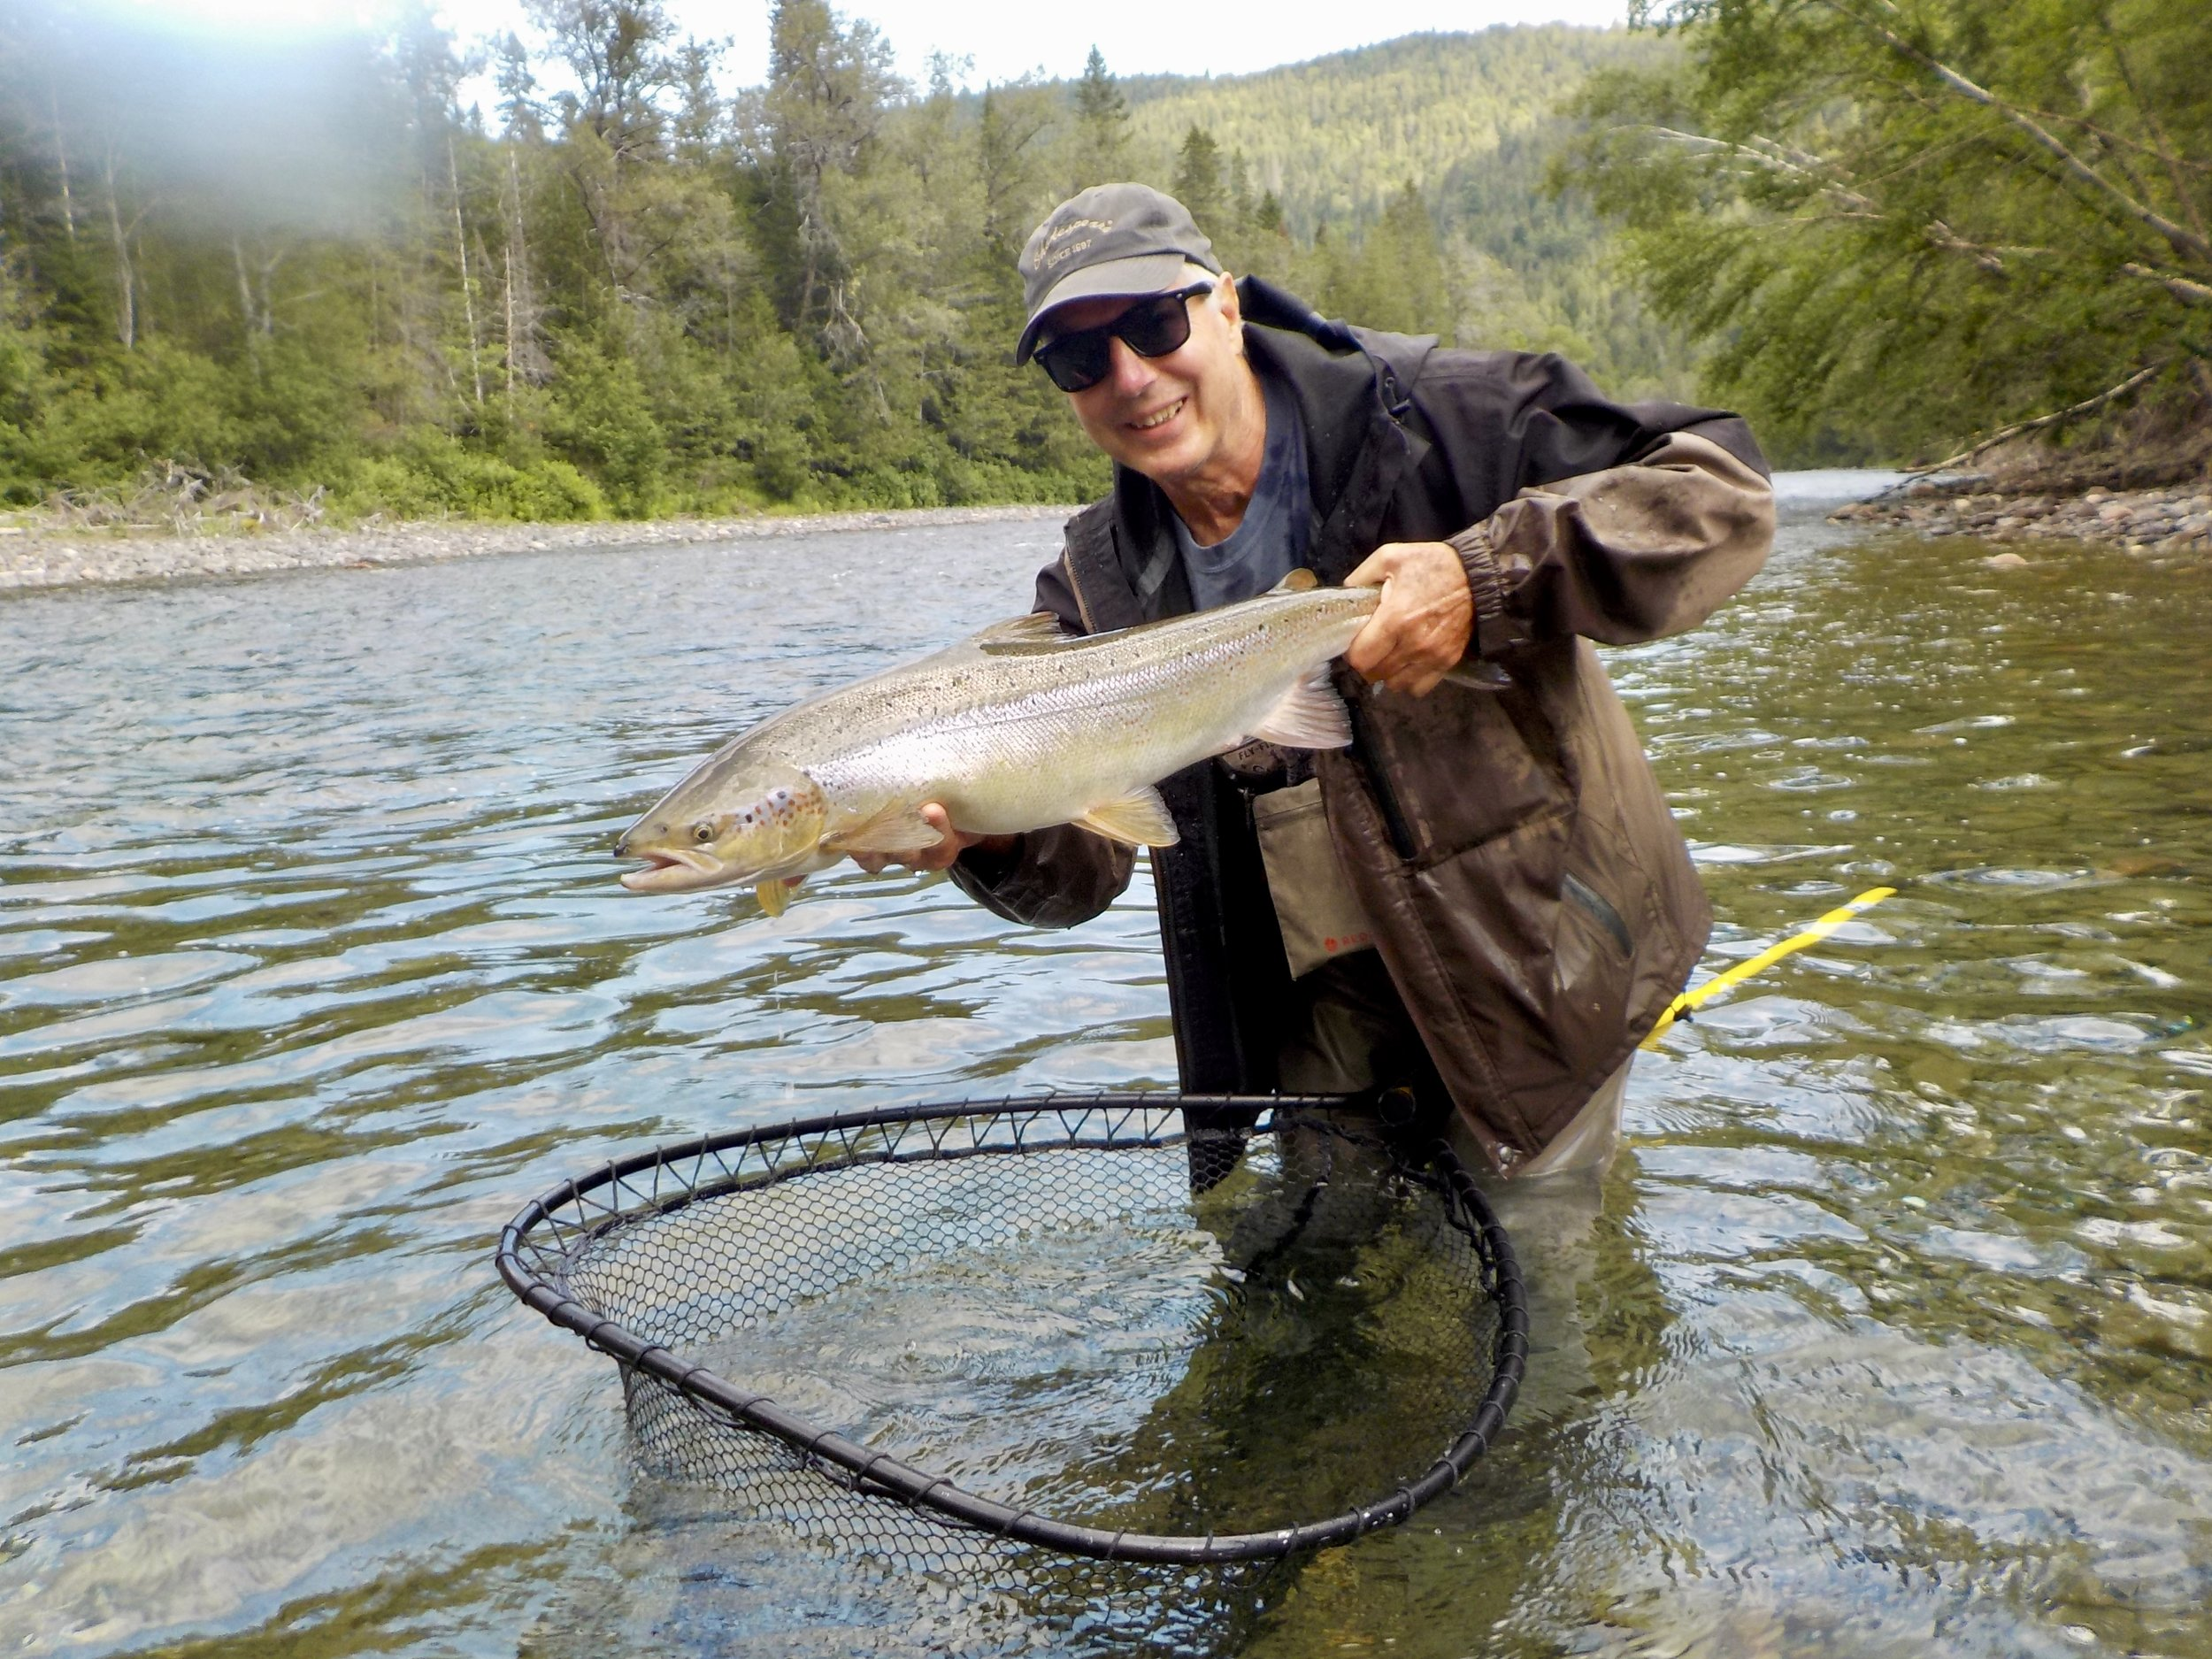 We had the please of welcoming Christopher Crum for the first time this year at Camp Bonaventure! Here he is releasing a beautiful salmon back into the Petite Cascapedia.